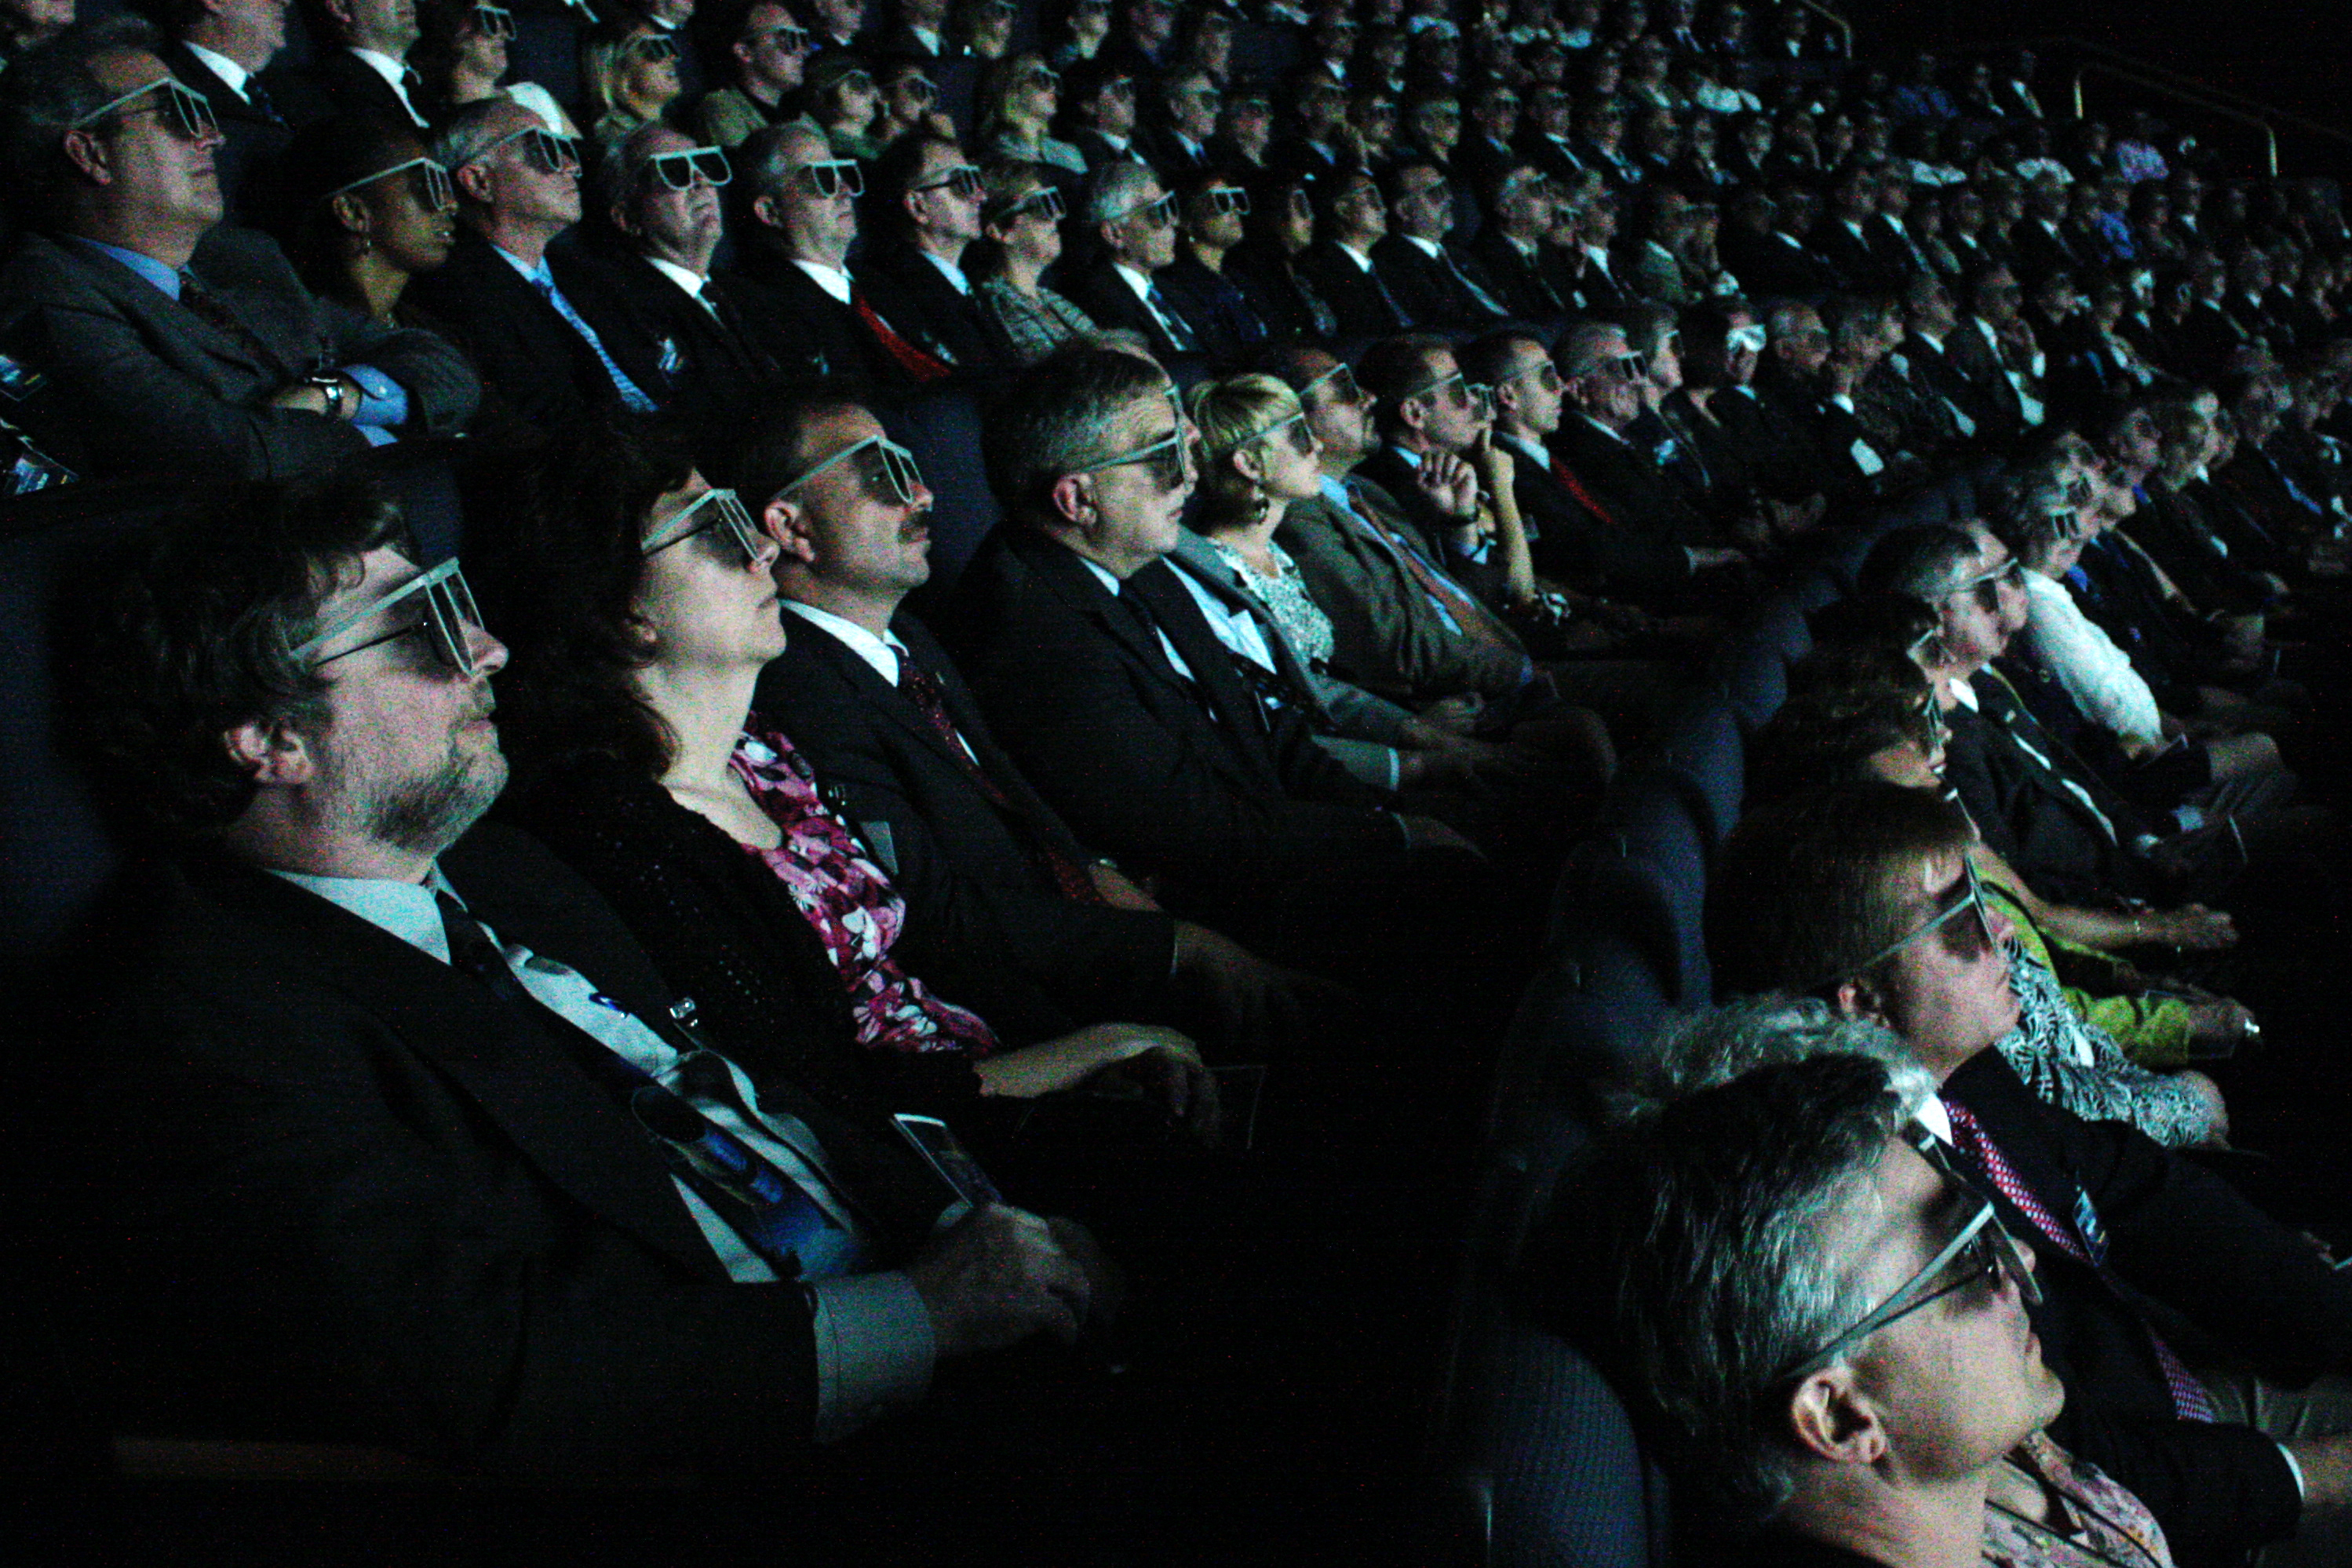 movie theater with 3d film playing